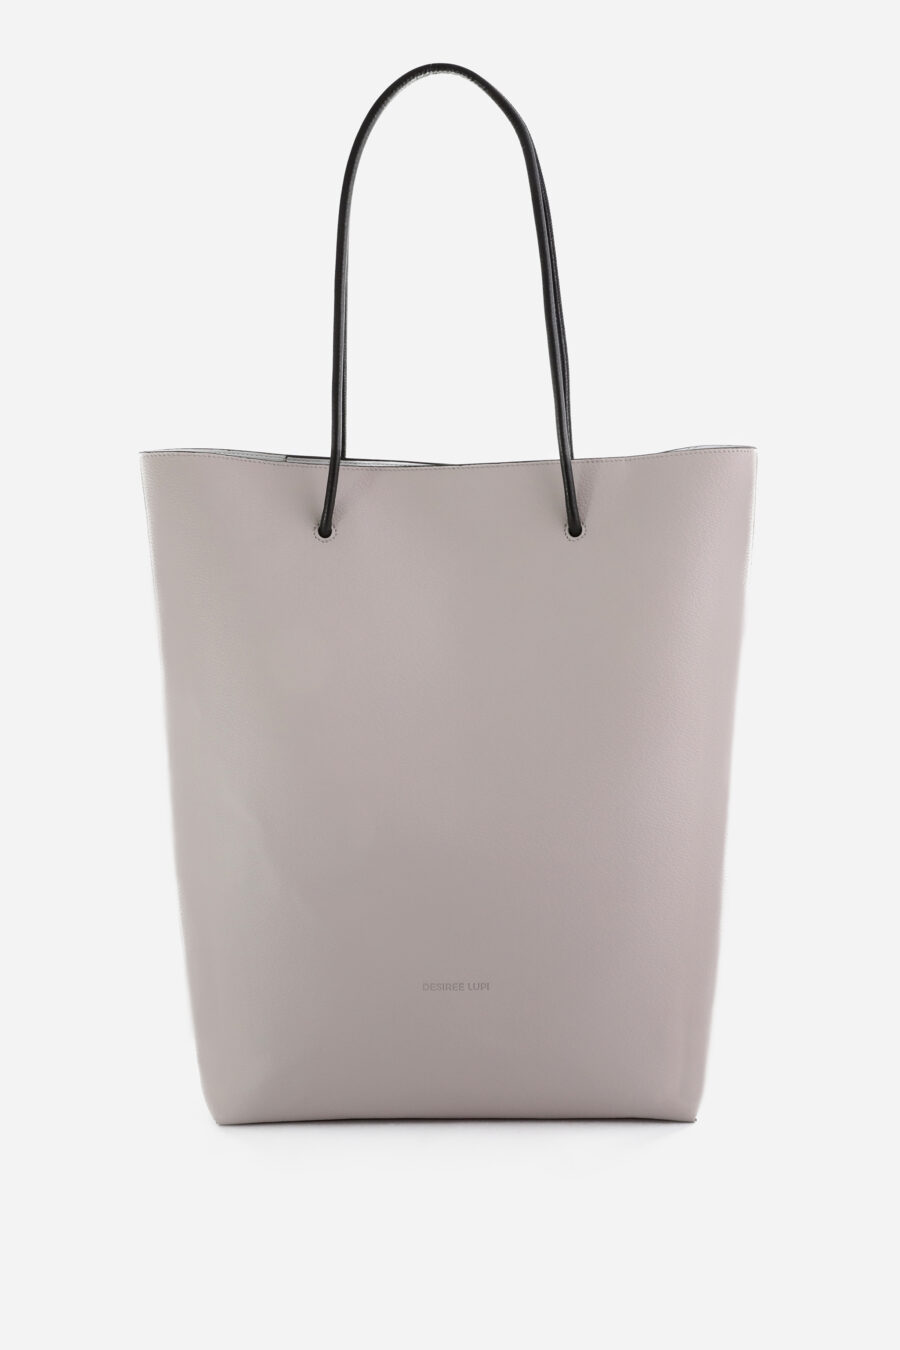 SHOPPING-BAG-KELLY-PELLE-MARTELLATA-PORCELLANA_1